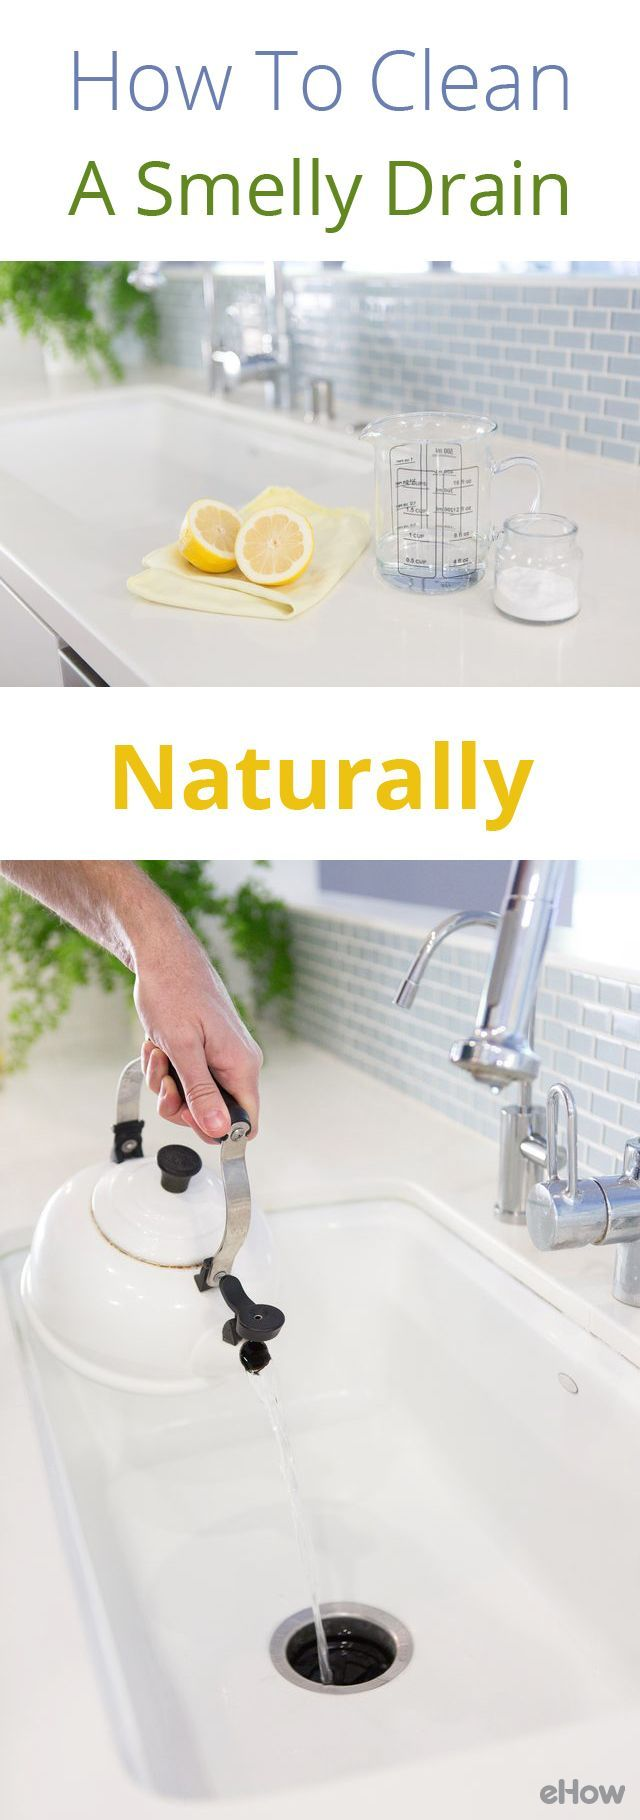 25 best ideas about smelly drain on pinterest clean for How to keep a toilet clean